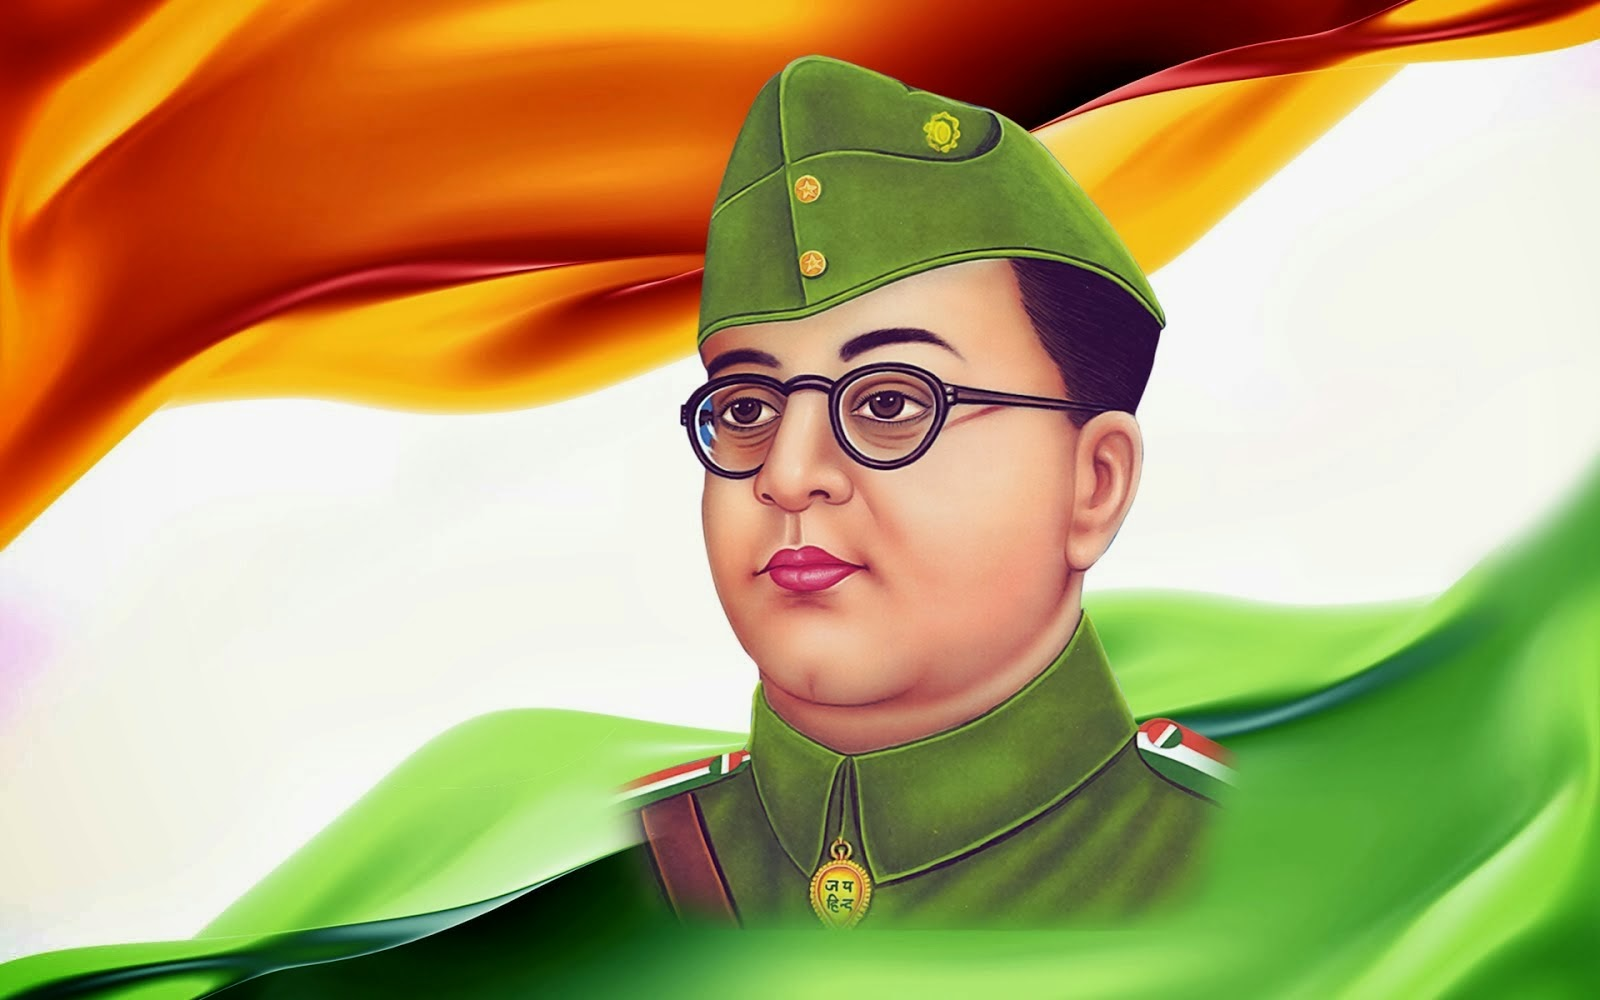 netaji subhash chandra bose Netaji subhas chandra bose was born on 23rd january 1897 at cuttack in orissa the house where he was born has been converted into netaji museum rebel as a student netaji was a rebel right from his college days.